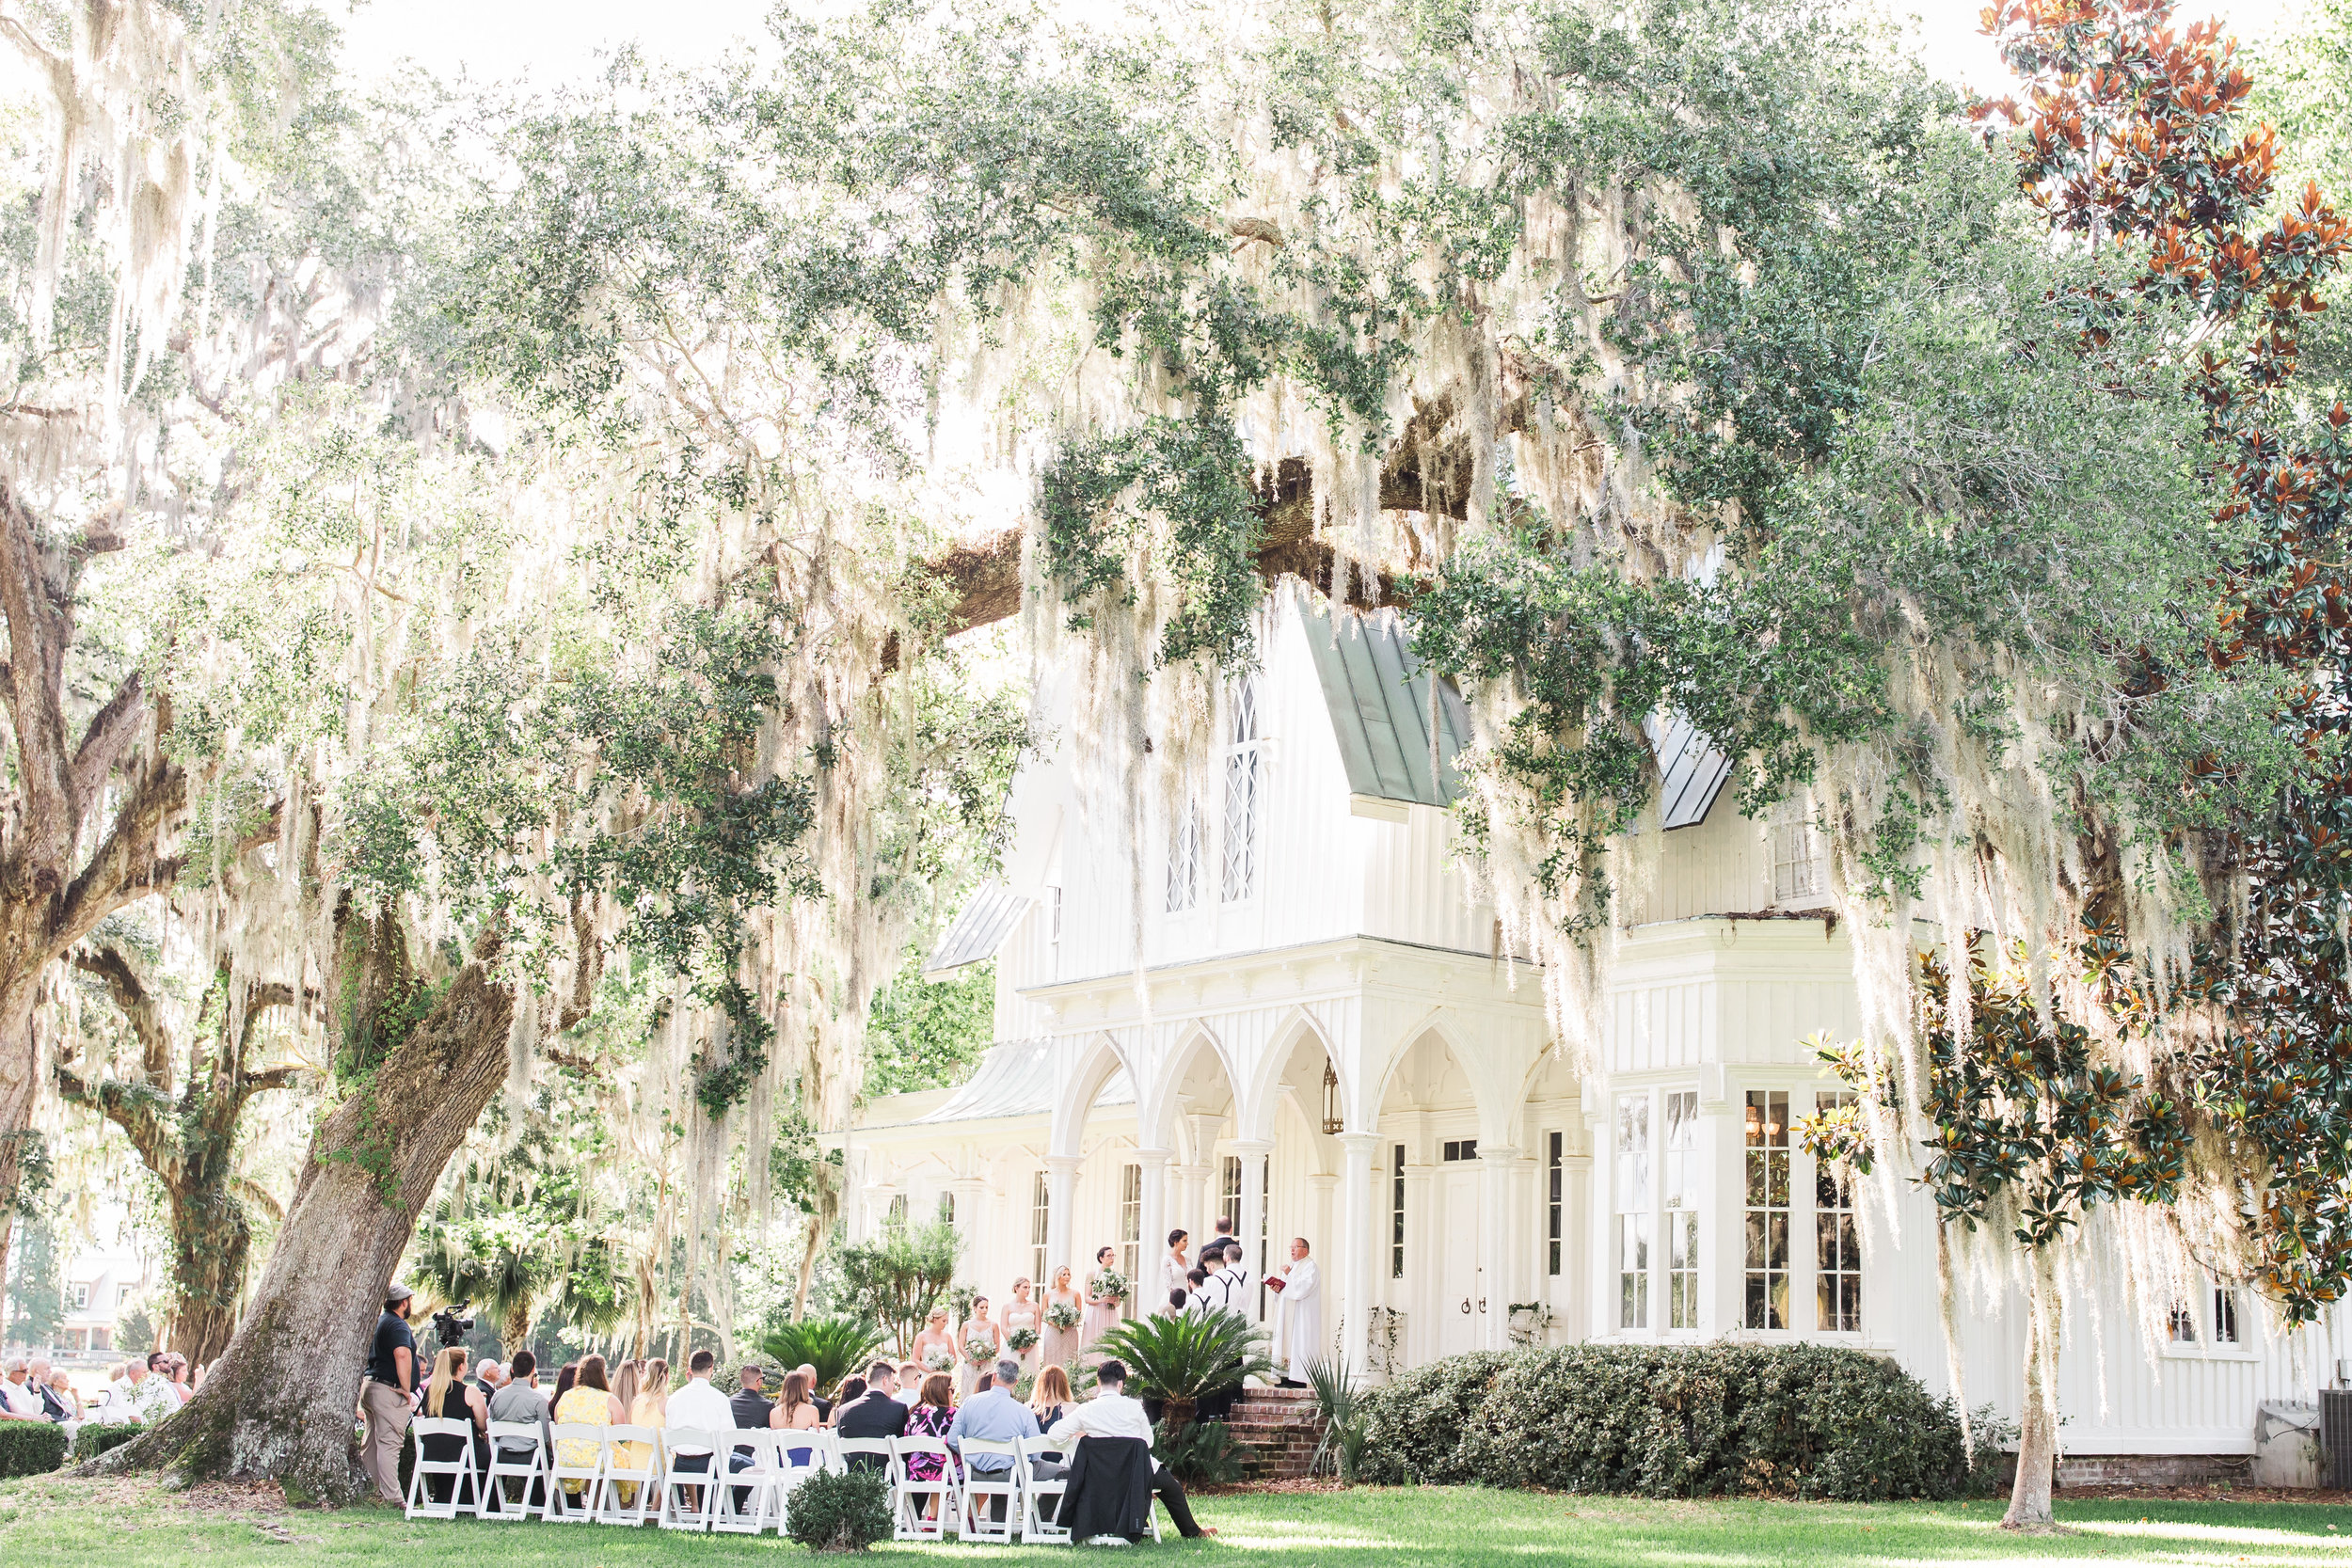 rose-hill-mansion-bluffton-sc-wedding-photographer-jb-marie-photography